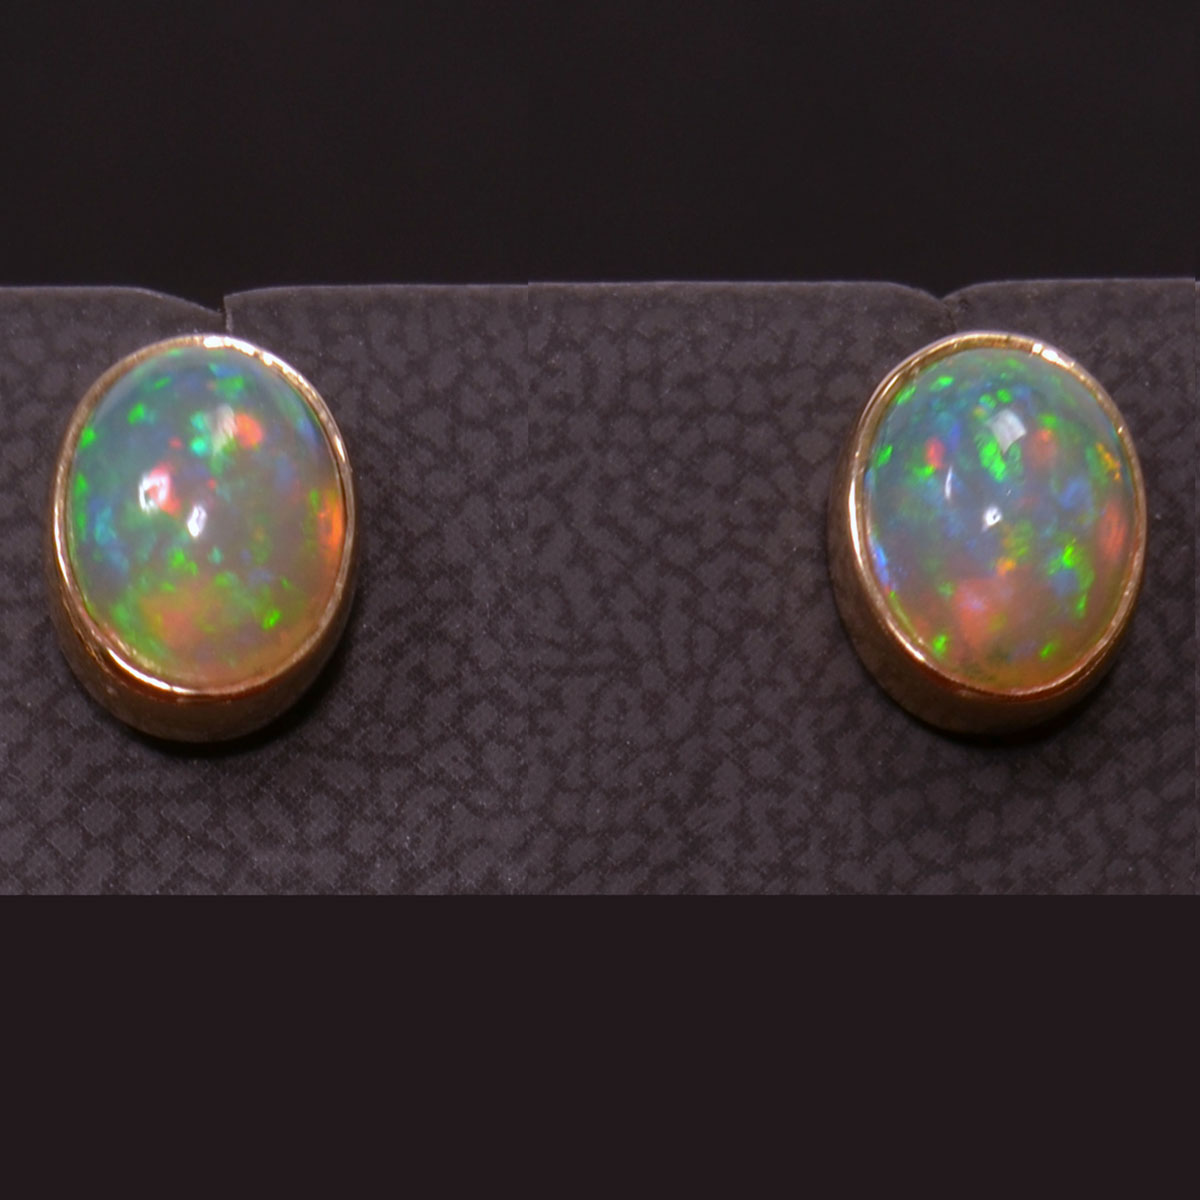 14k Yellow Gold Opal Earrings Available At John Wallick Jewelers In Sun City Arizona Near